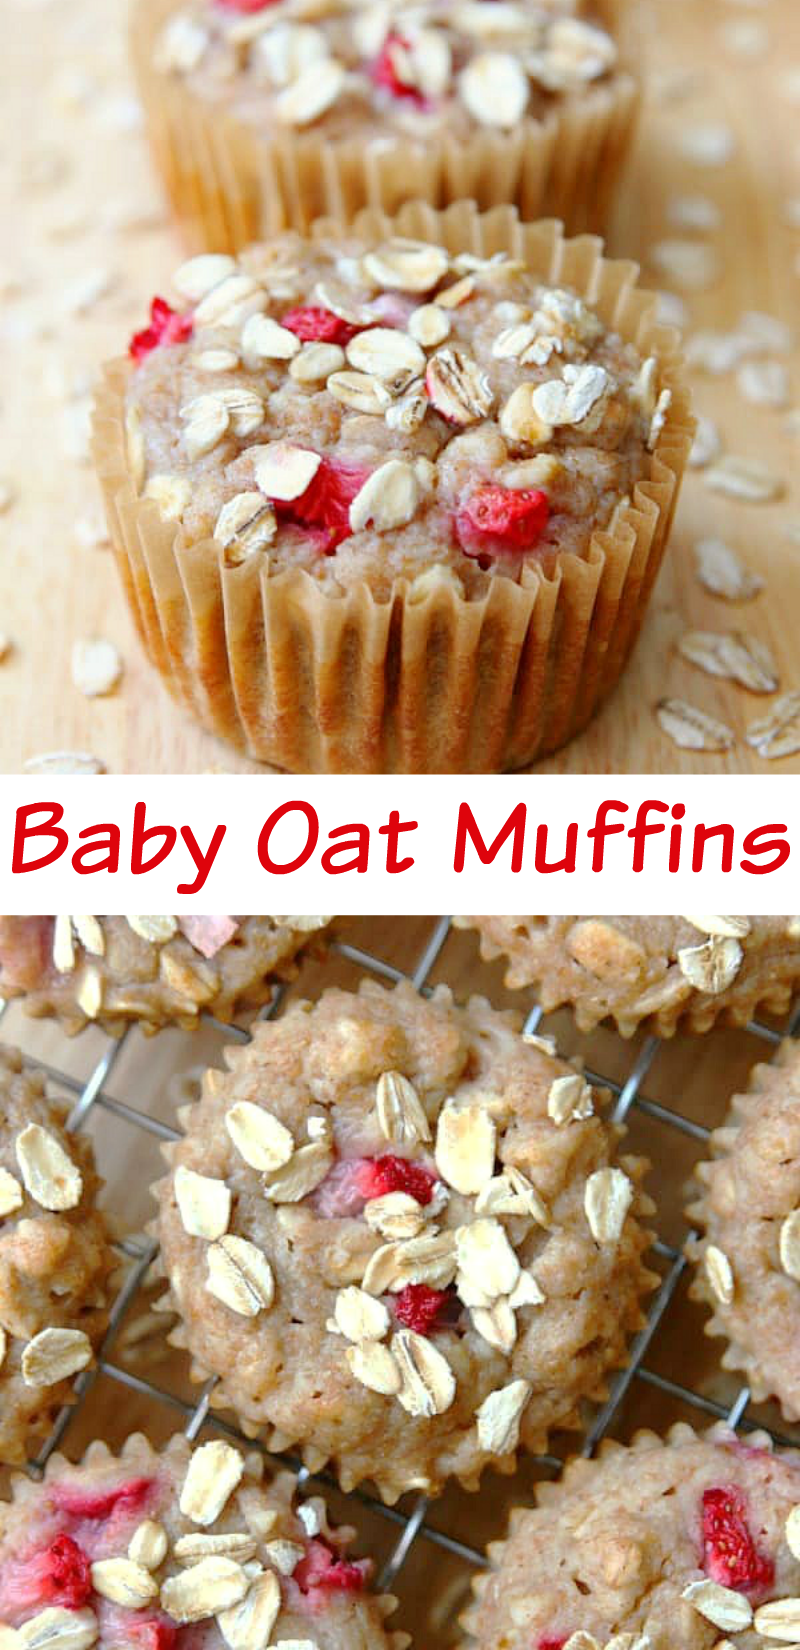 Baby Oat Muffins